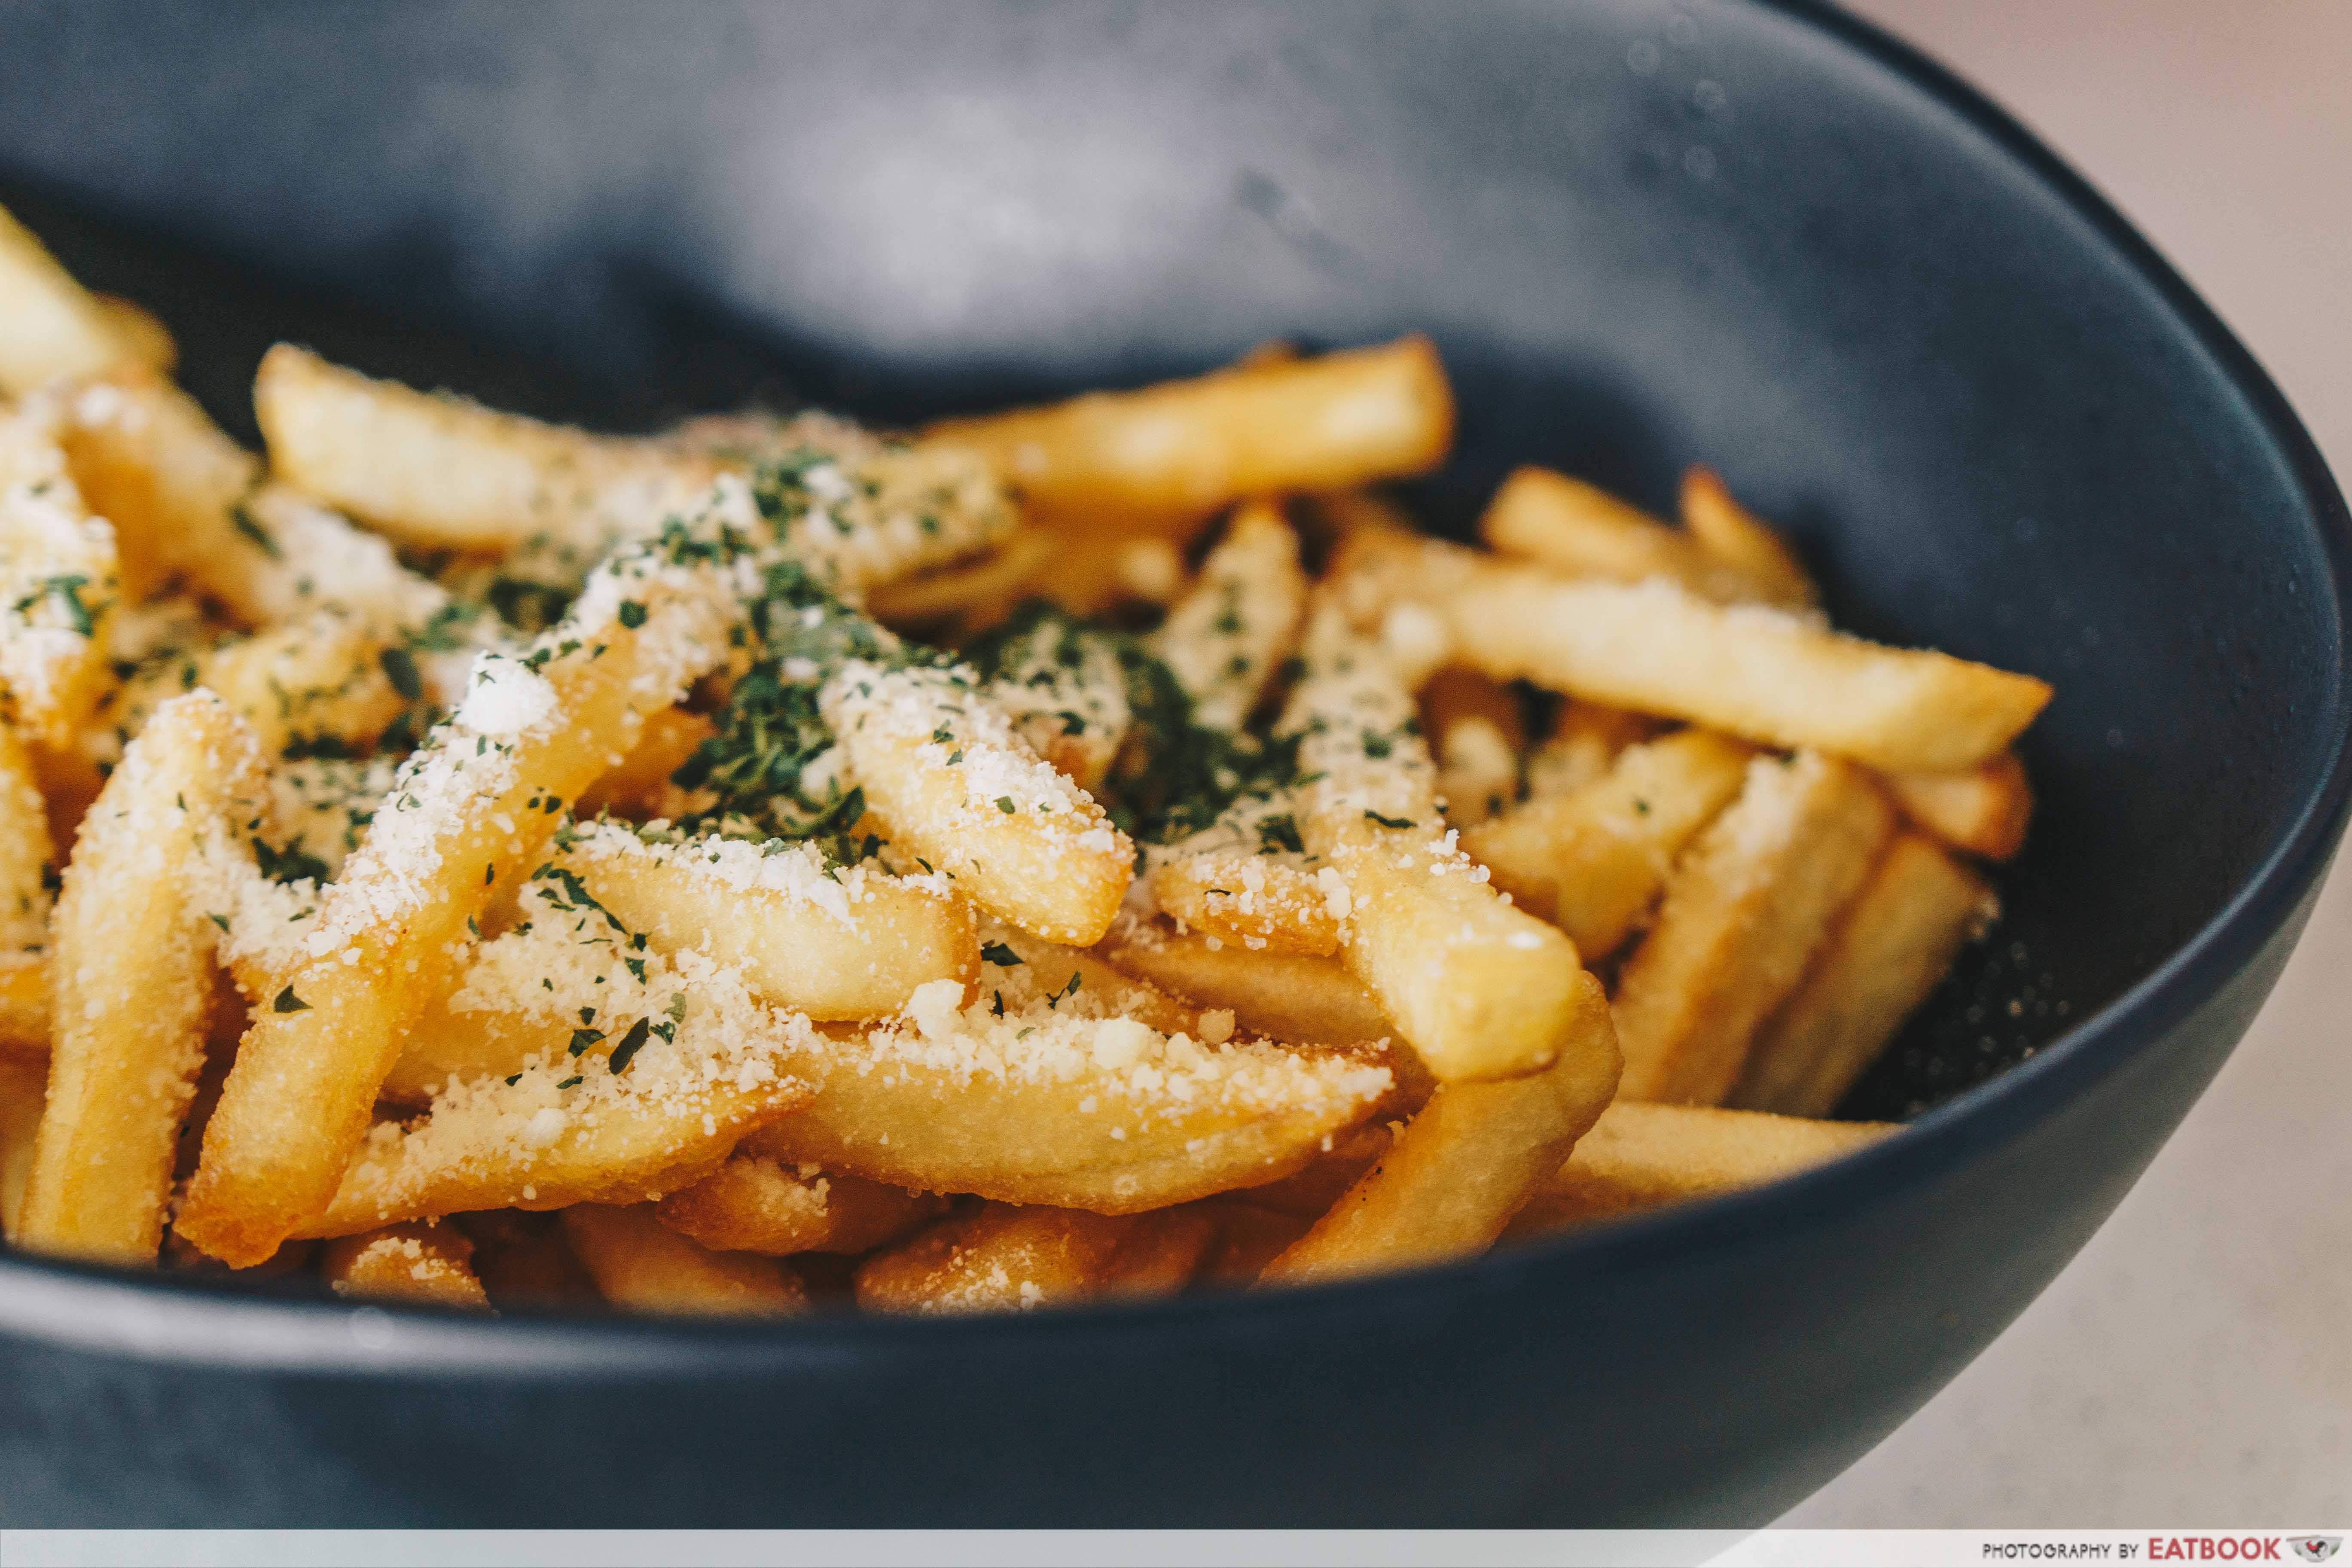 Ted's Kitchen - Truffle Fries